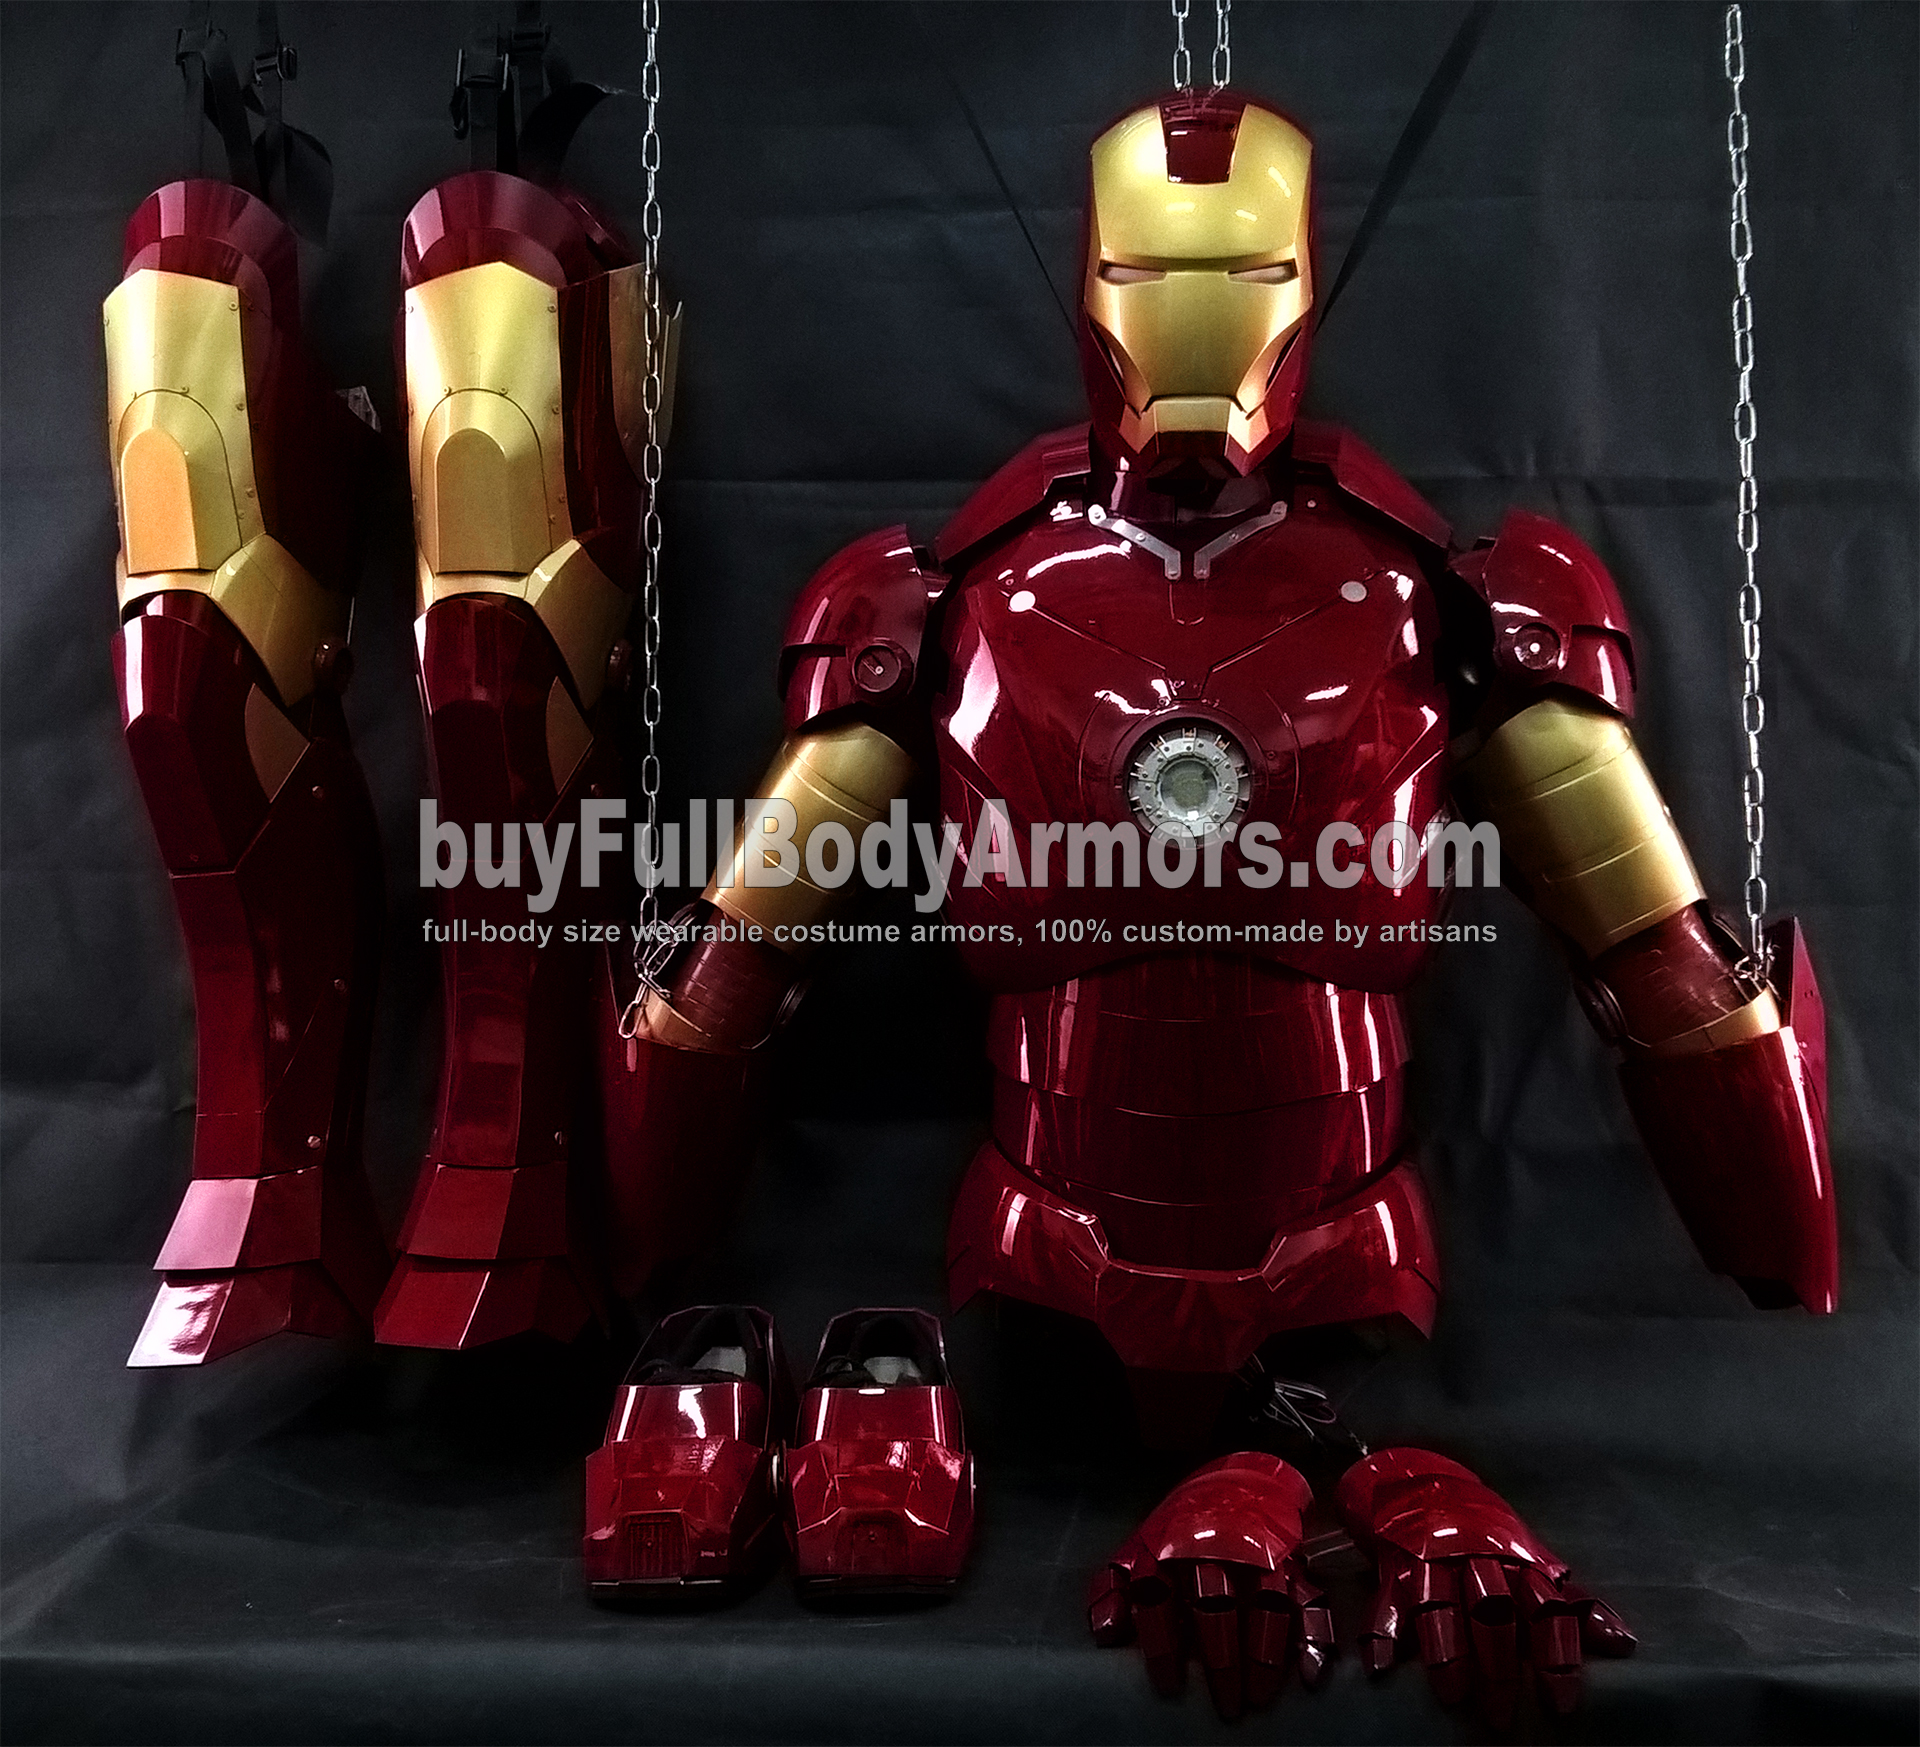 All Parts of the Wearable Iron Man Suit Mark 3 III Armor Costume